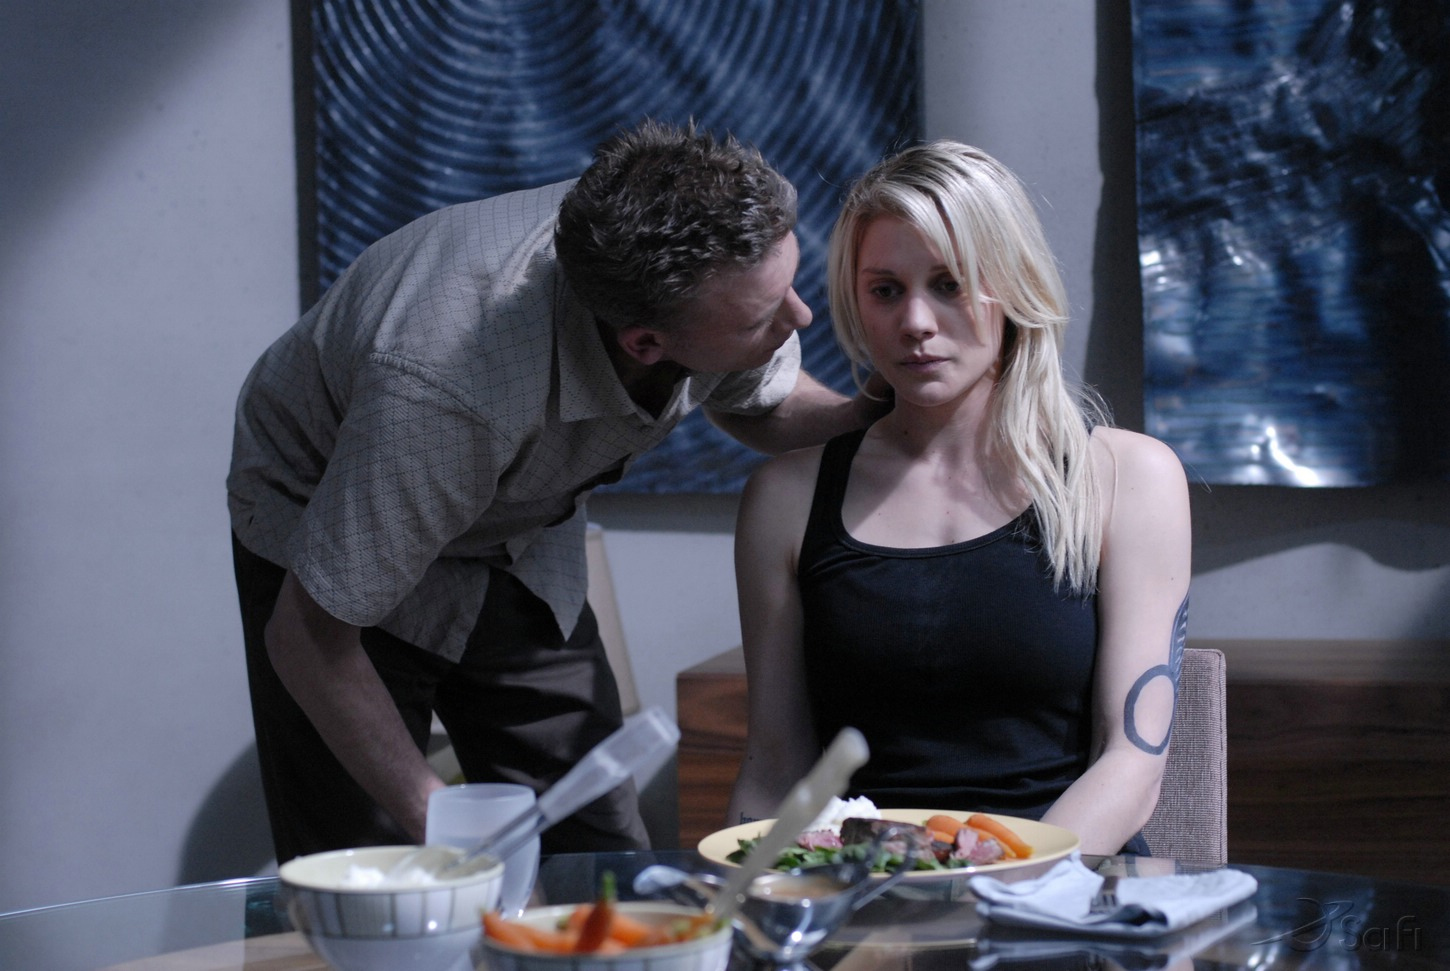 Callum Keith Rennie and Katee Sackhoff in Battlestar Galactica (2004)